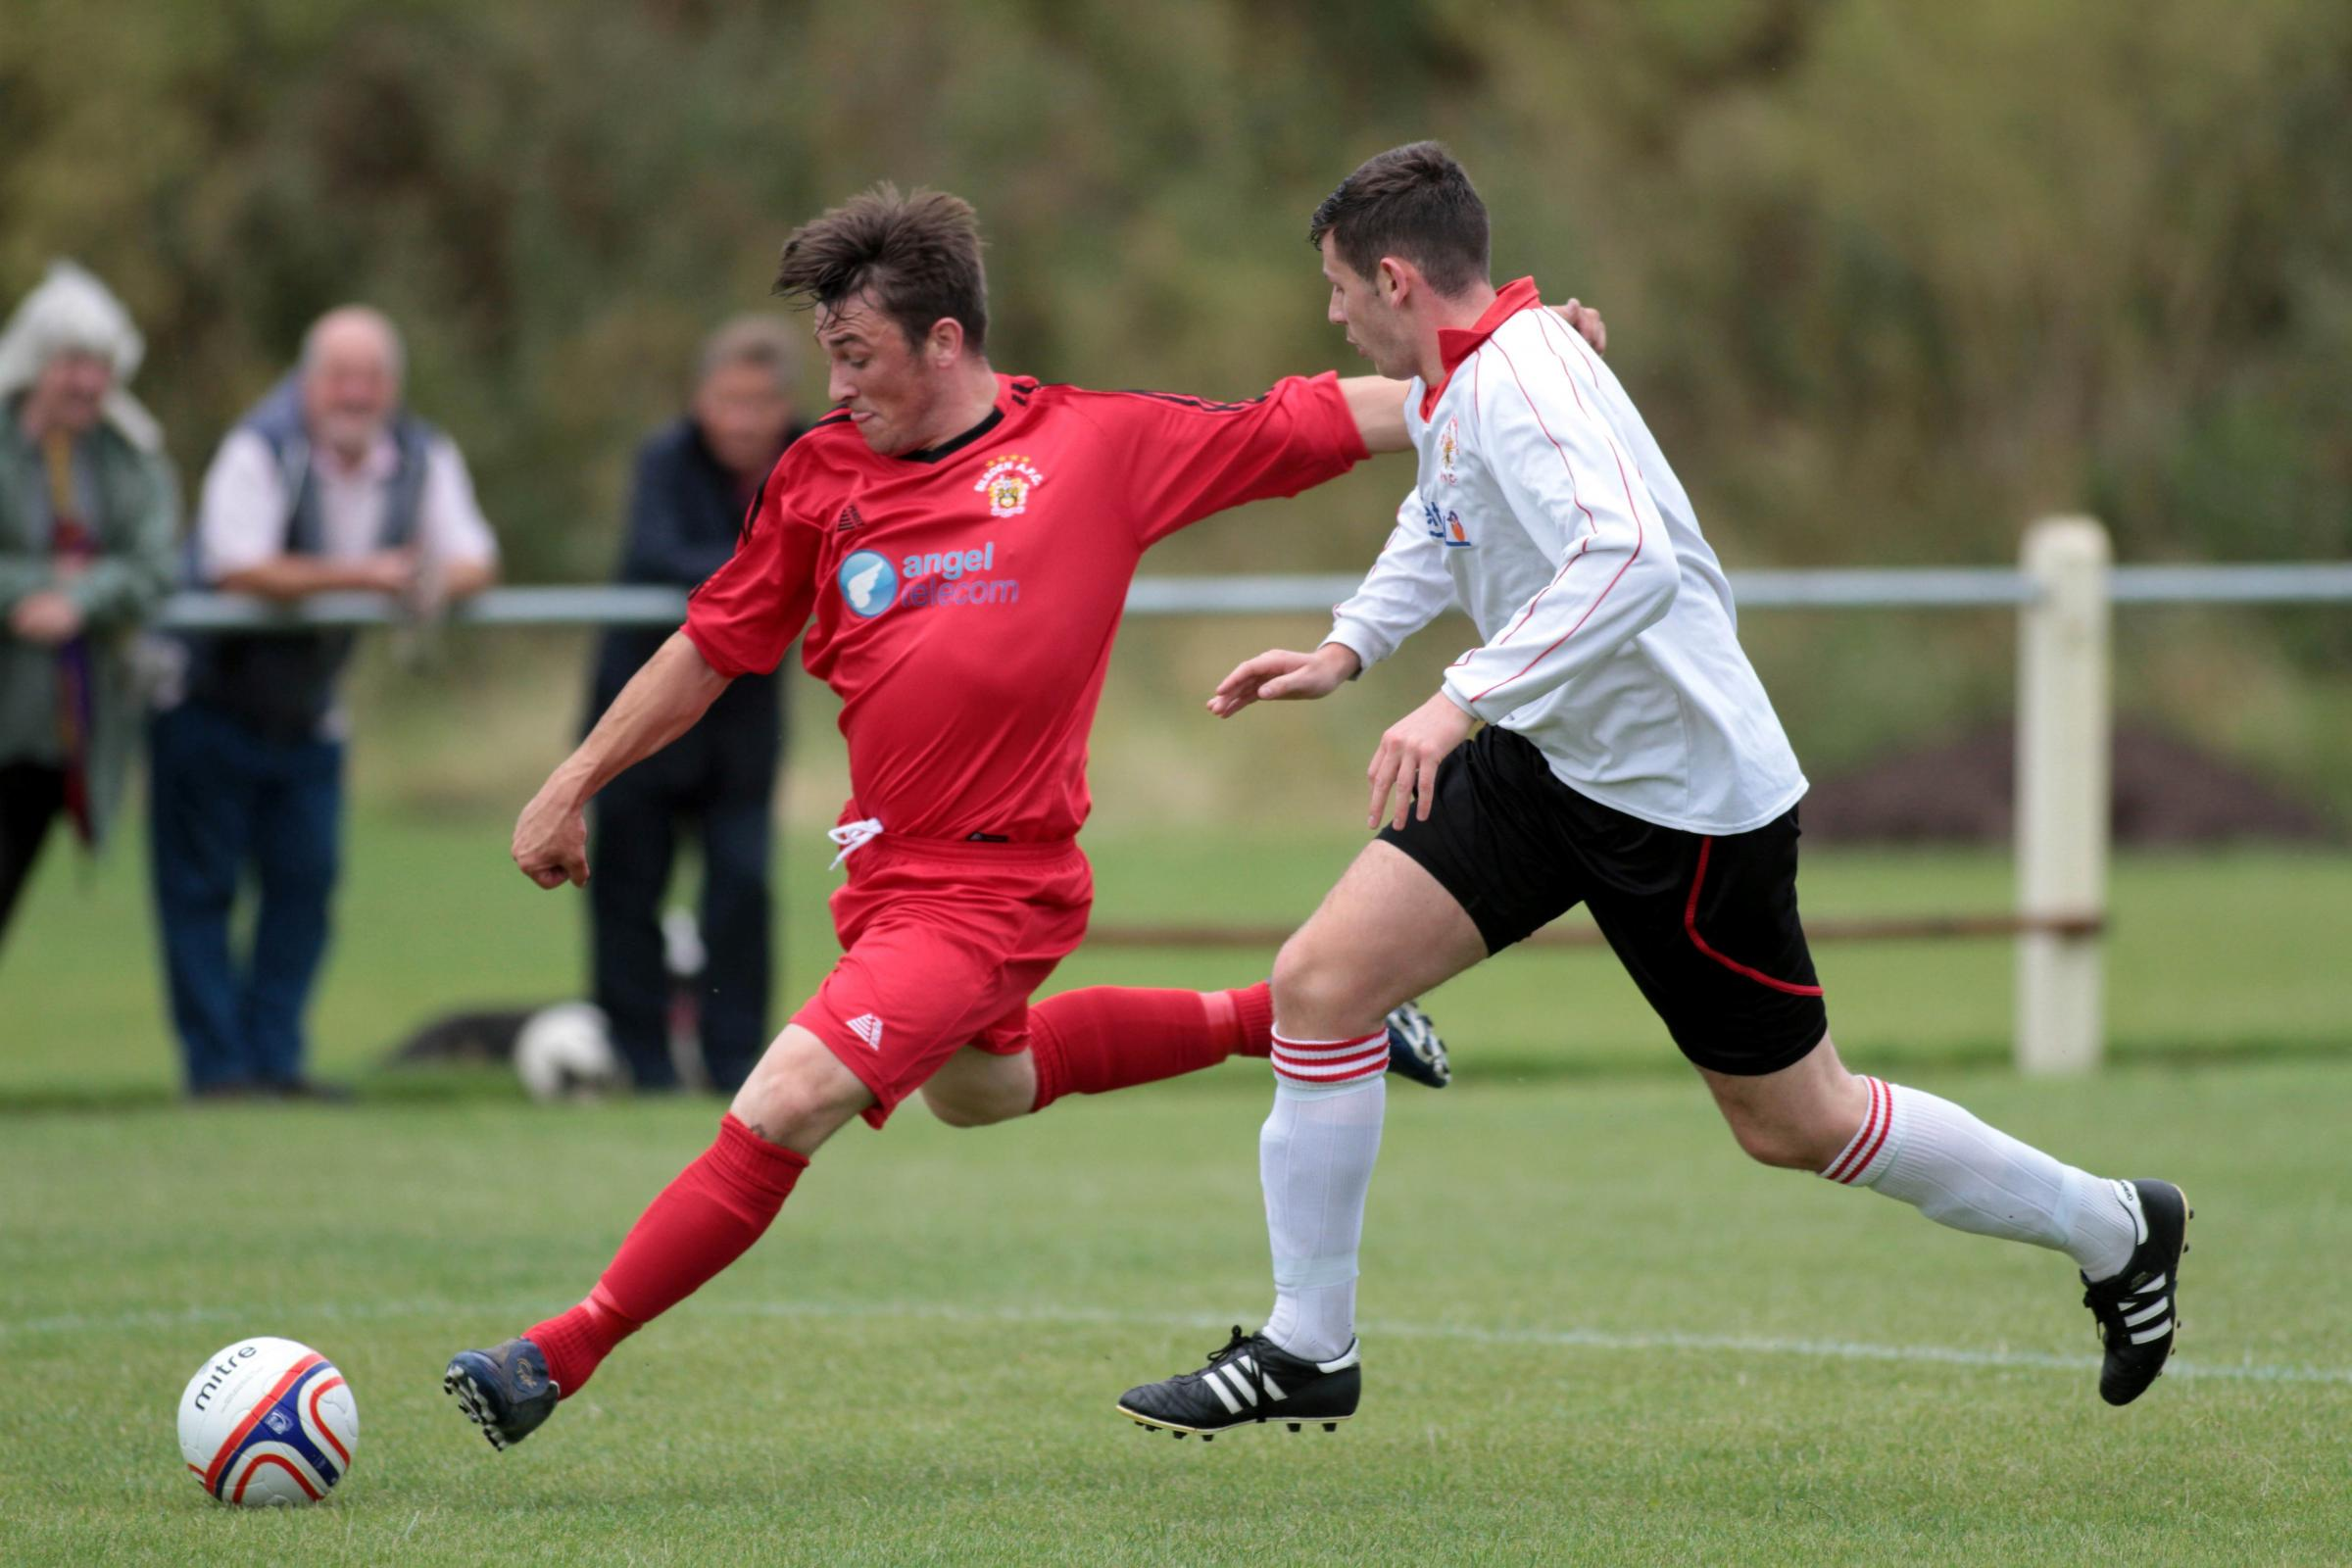 Nicky McNally shoots for Silsden during their 4-1 victory over Abbey Hey